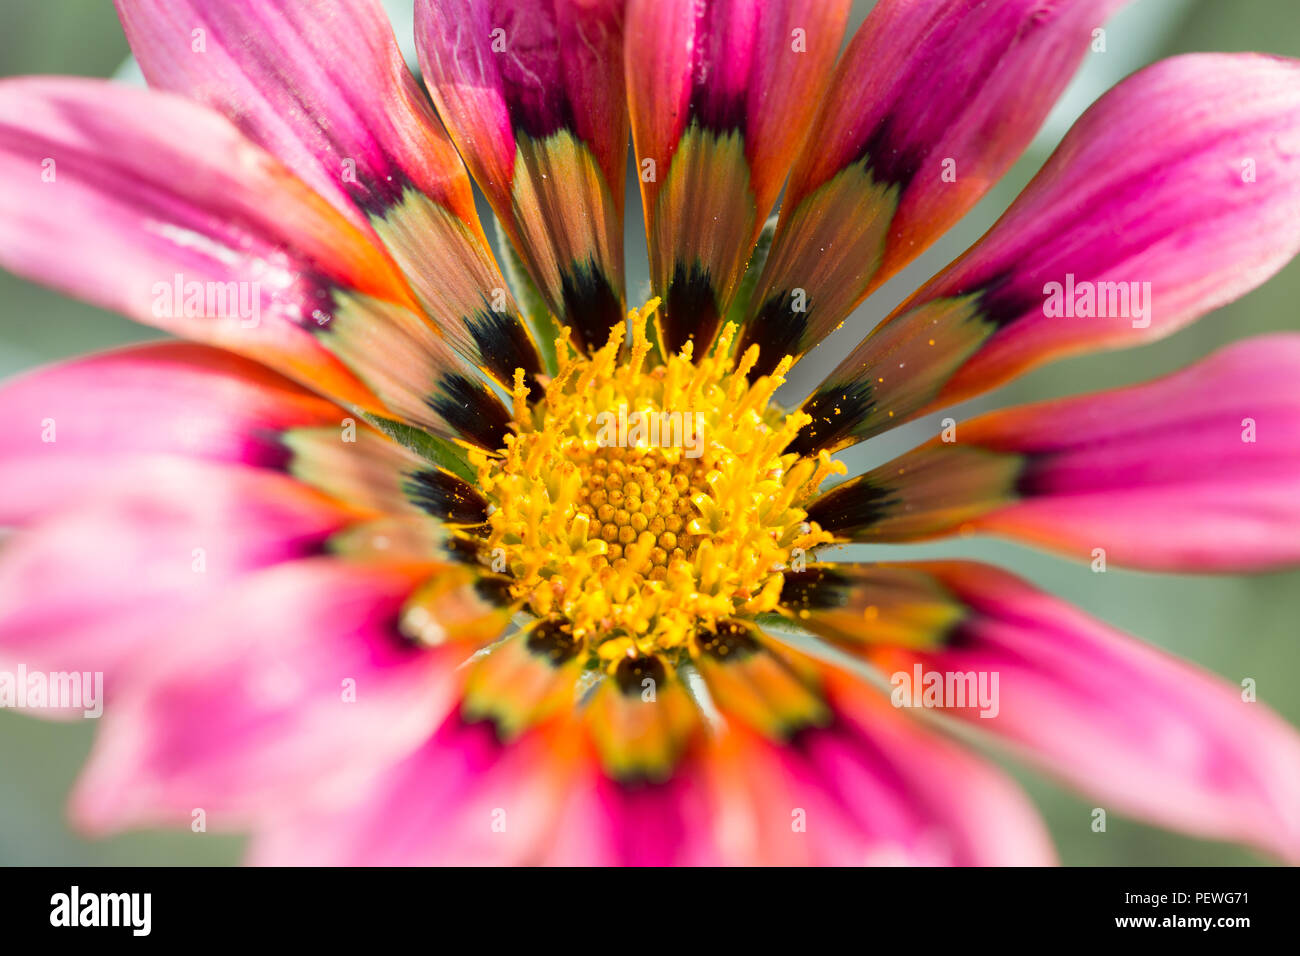 Gazania Talent Serie in voller Blüte. Stockbild